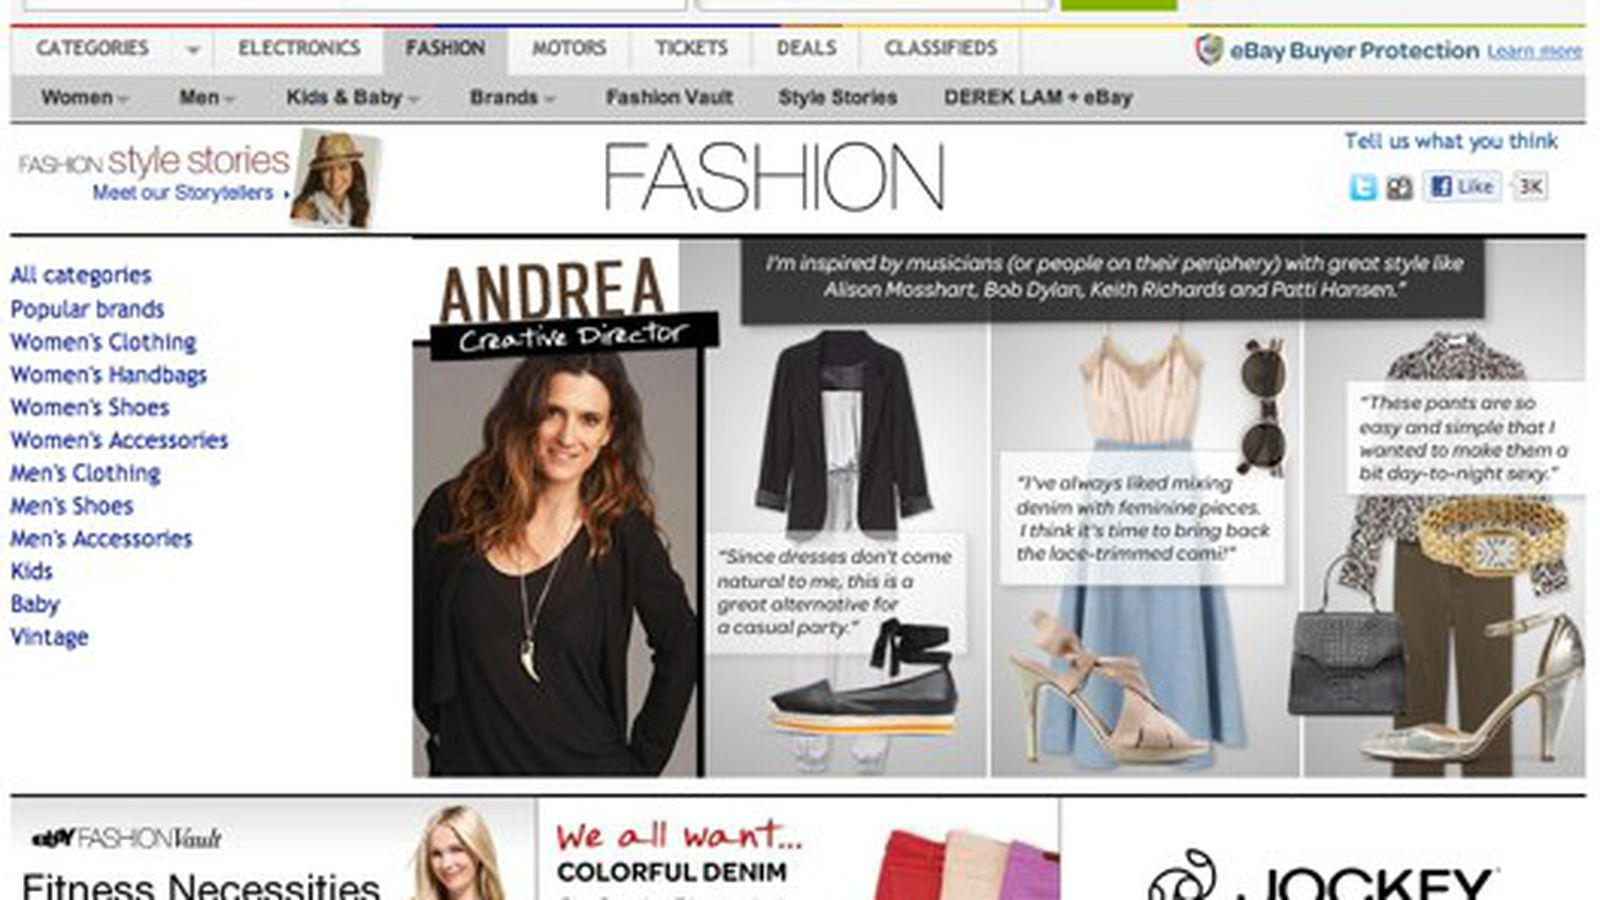 Fashion and you deals 17